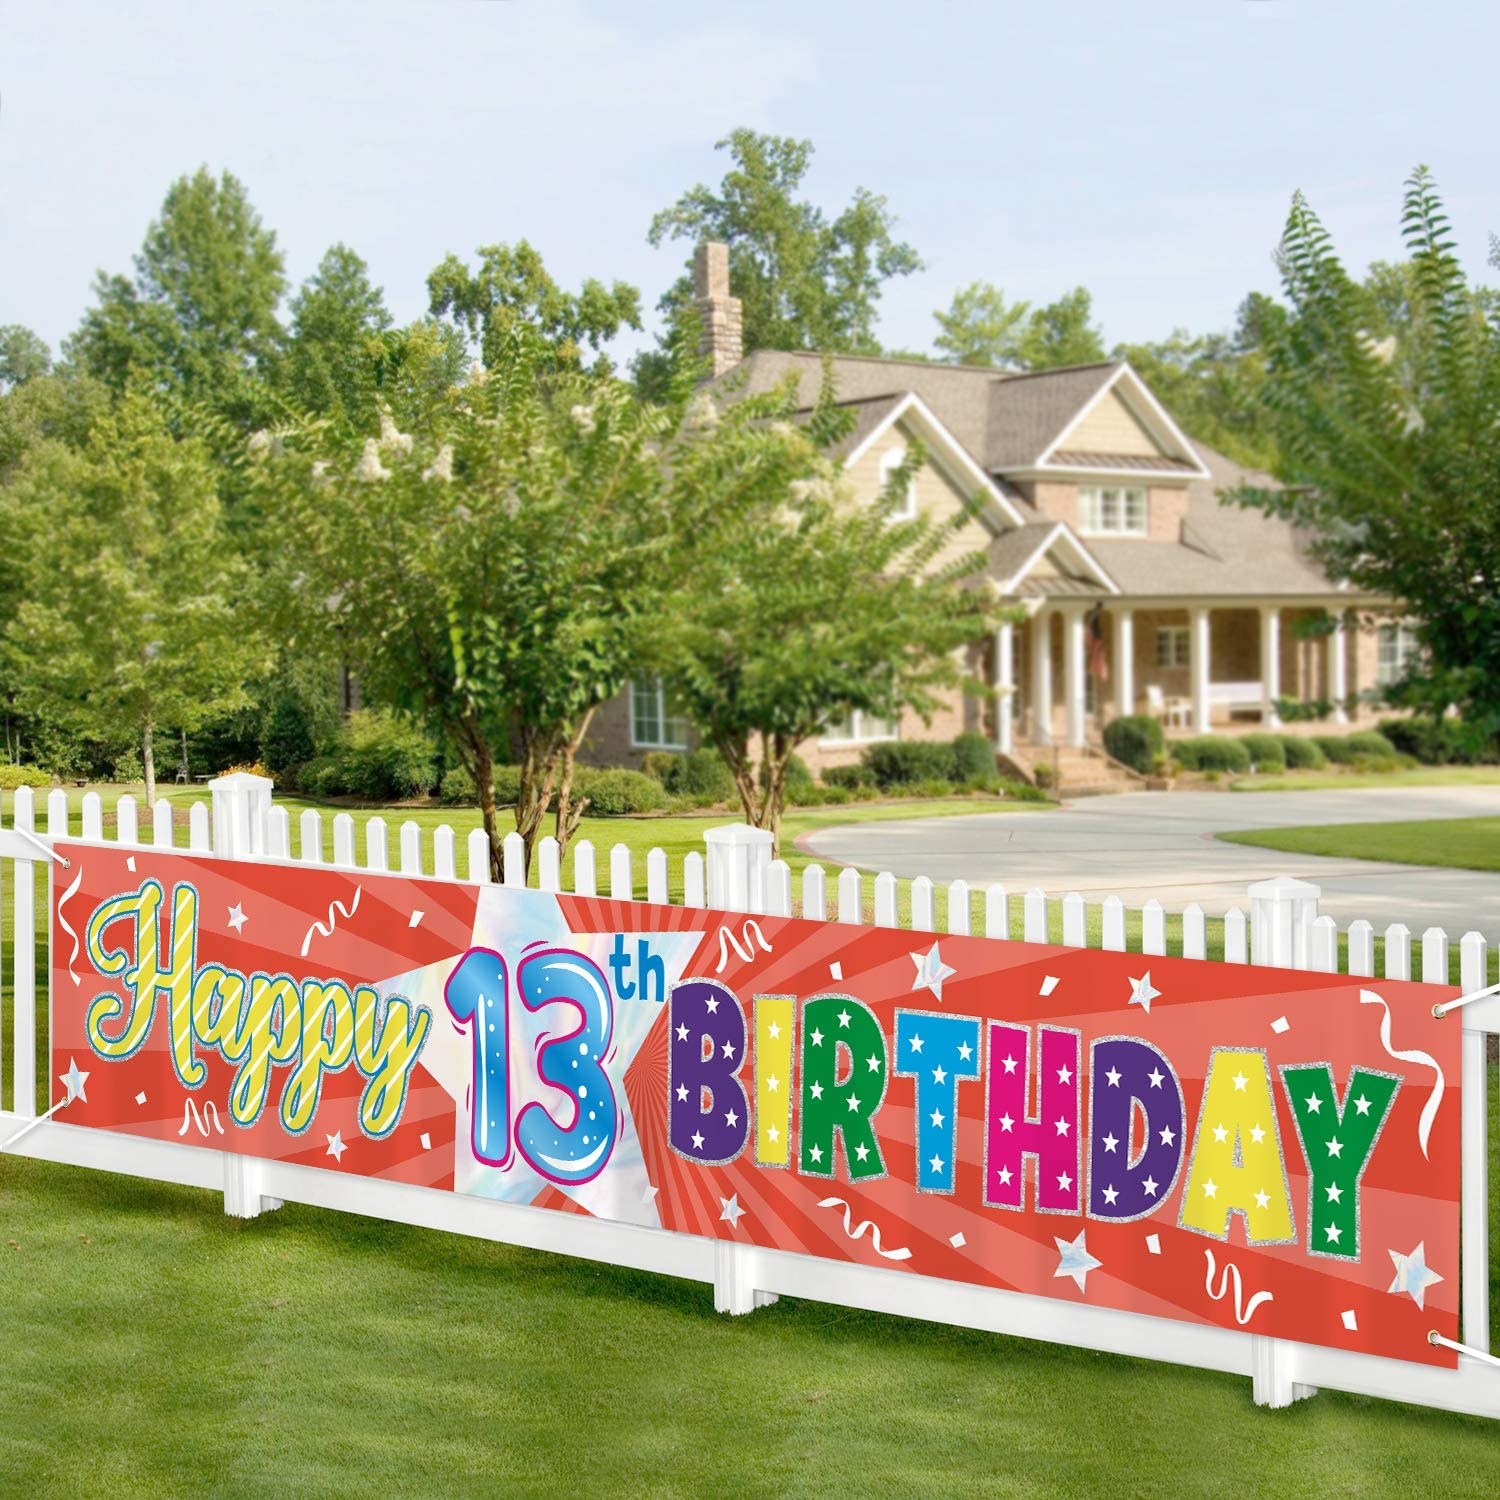 Pink Crown Happy 13th Birthday Banner Official Teenager Banner 13 Year Old Birthday Party Decorations Supplies Sign Backdrop,Custom Banner